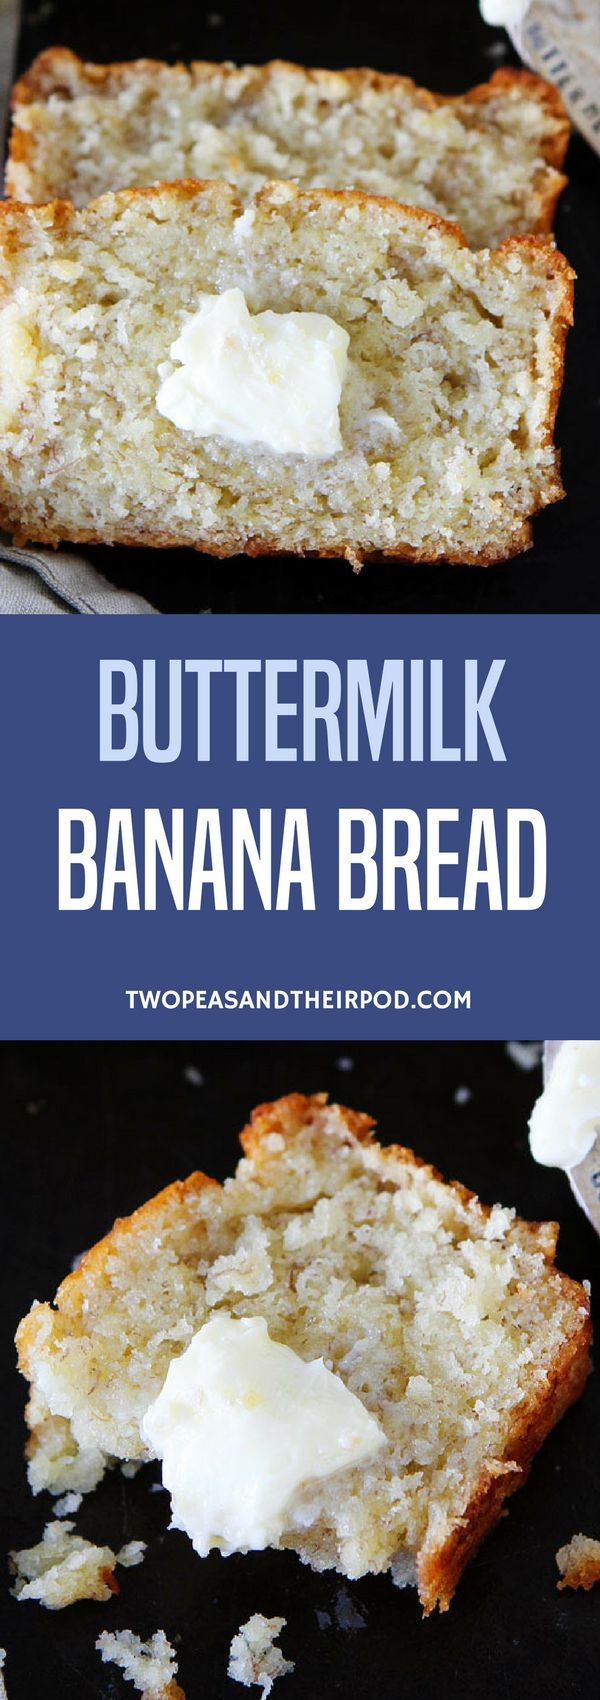 This Easy Buttermilk Banana Bread Recipe Always Gets Rave Reviews! Some Say It Is The BEST Banana Bread Recipe Out There.